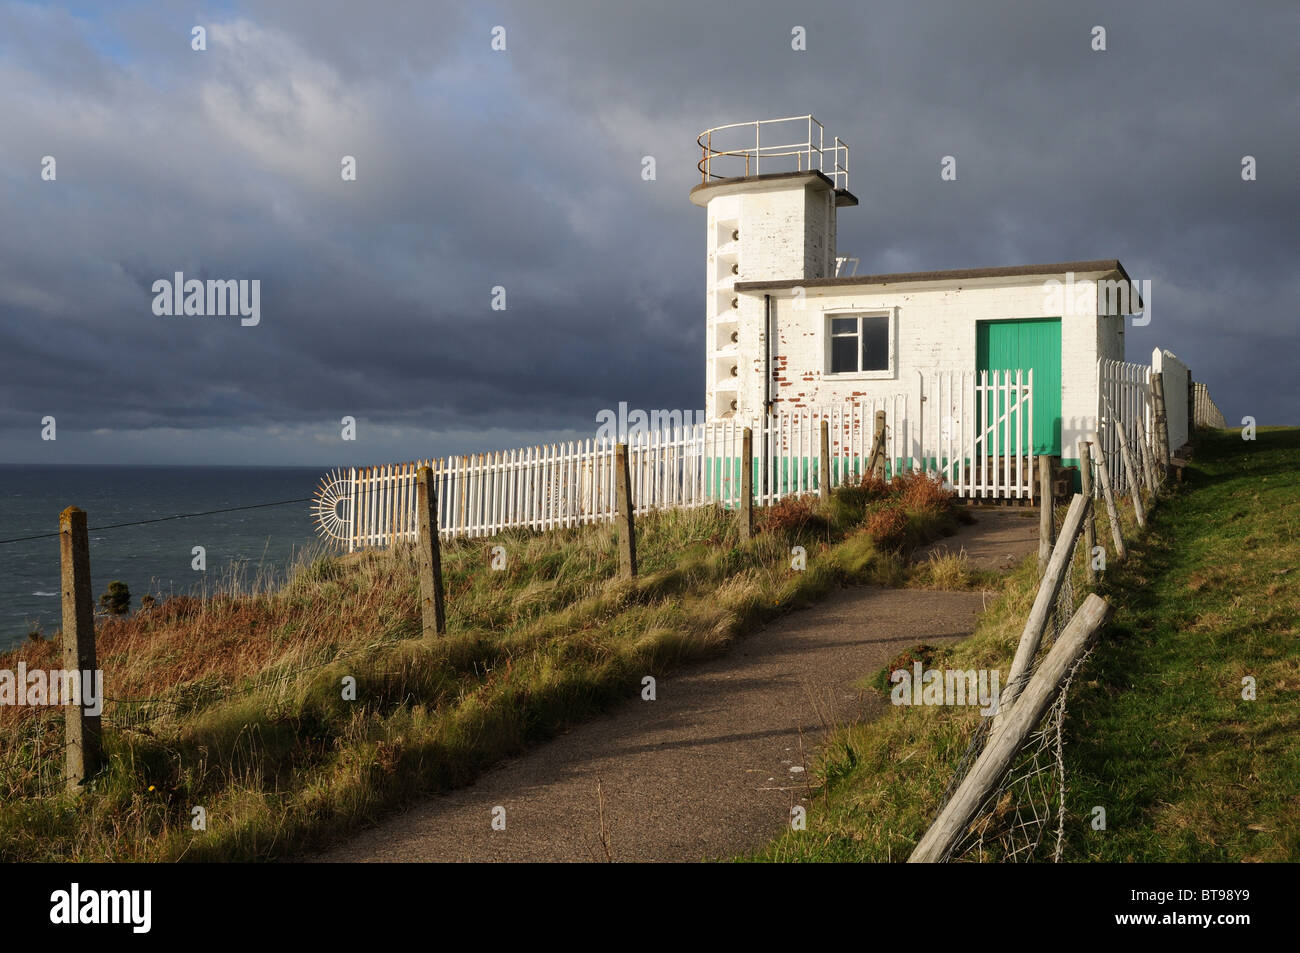 St Bees Head Fog Horn Fleswick Bay Cumbria England UK GB - Stock Image